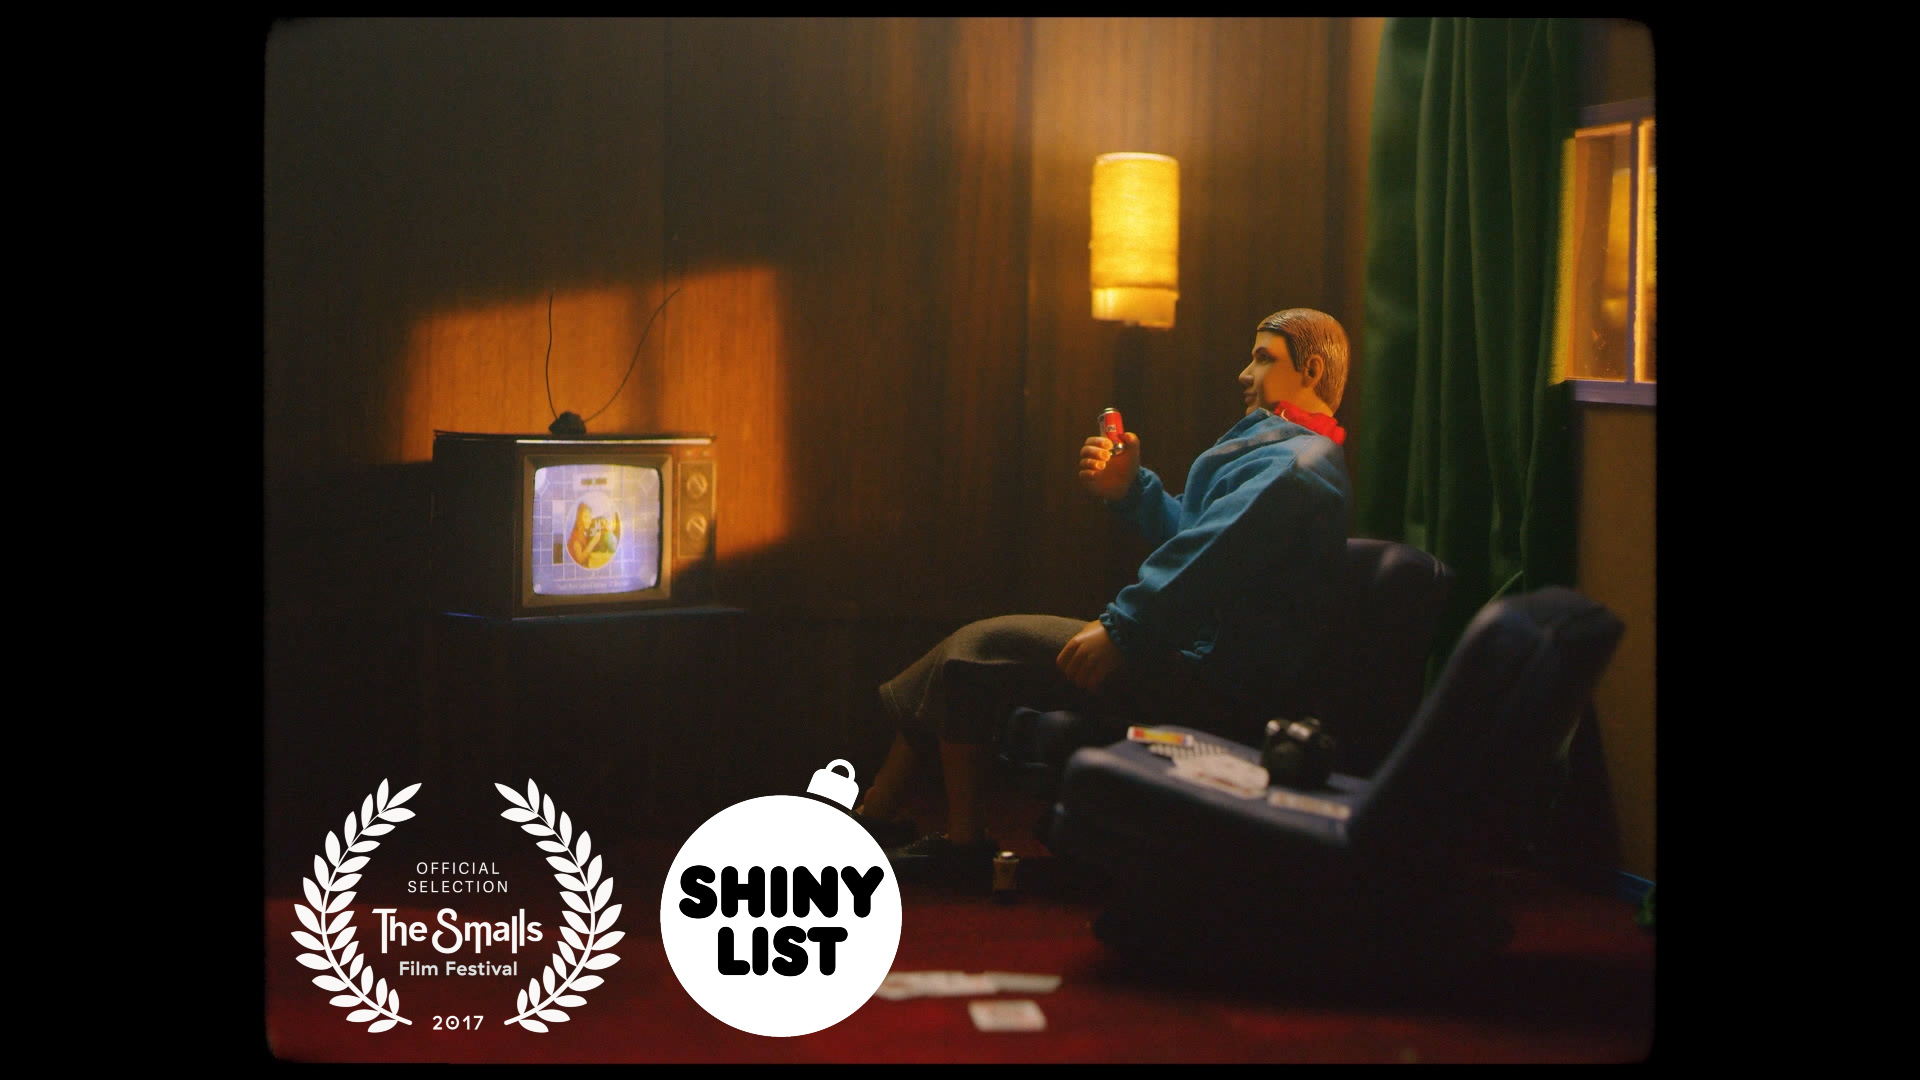 Mesmerized - XY&O. Press:  Promo News . Nominated for Best Recently Signed & Audience Awards @ The Shiny Awards. Official Selection - The Smalls Film Festival.